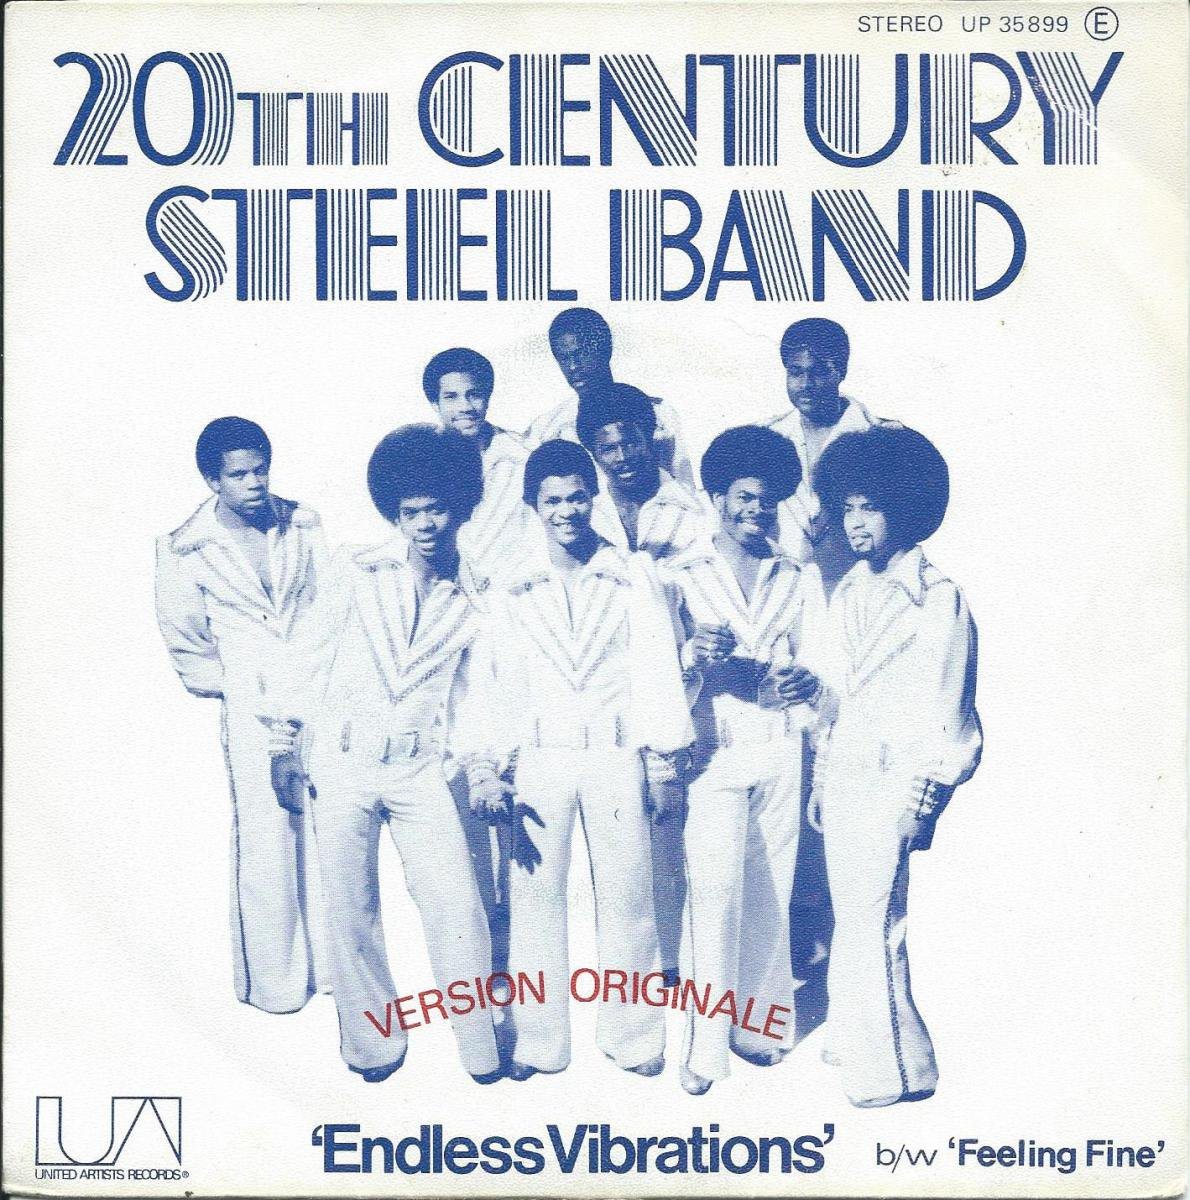 20TH CENTURY STEEL BAND ‎/ ENDLESS VIBRATIONS / FEELING FREE (7